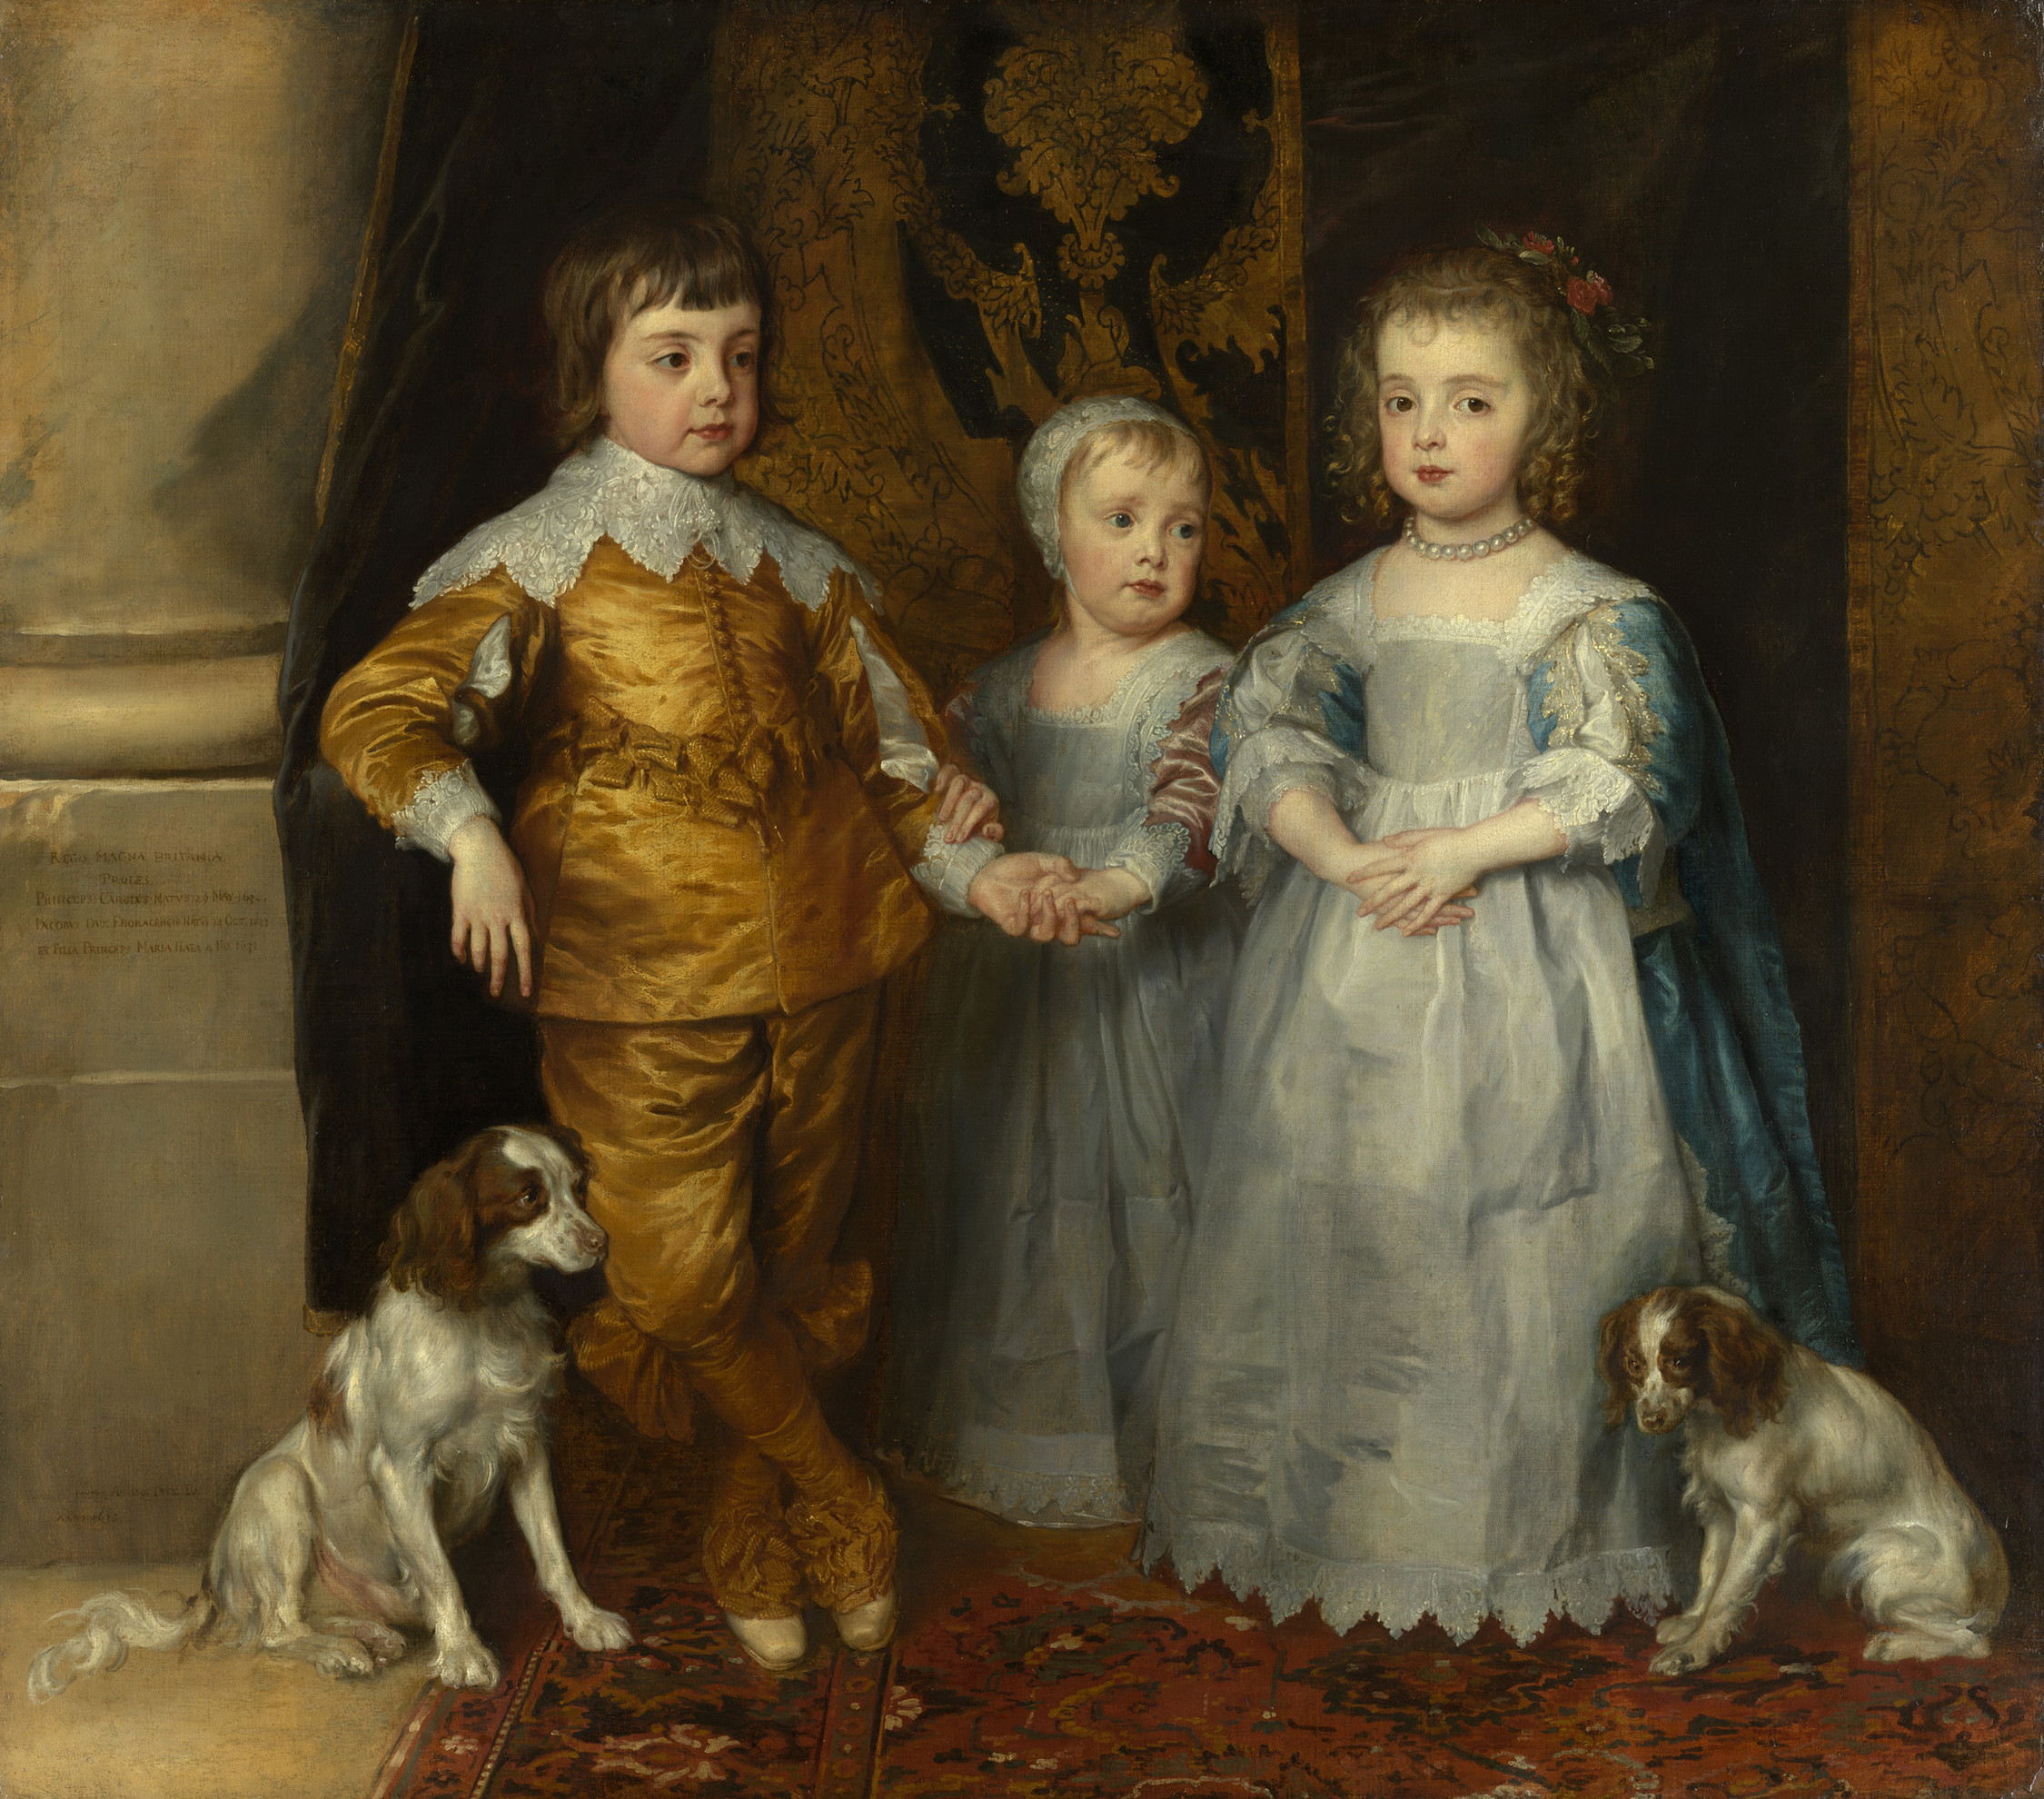 Young King Charles II of England with his spaniel. 17th century. Royal Collection. Anthony van Dyck (1599–1641)